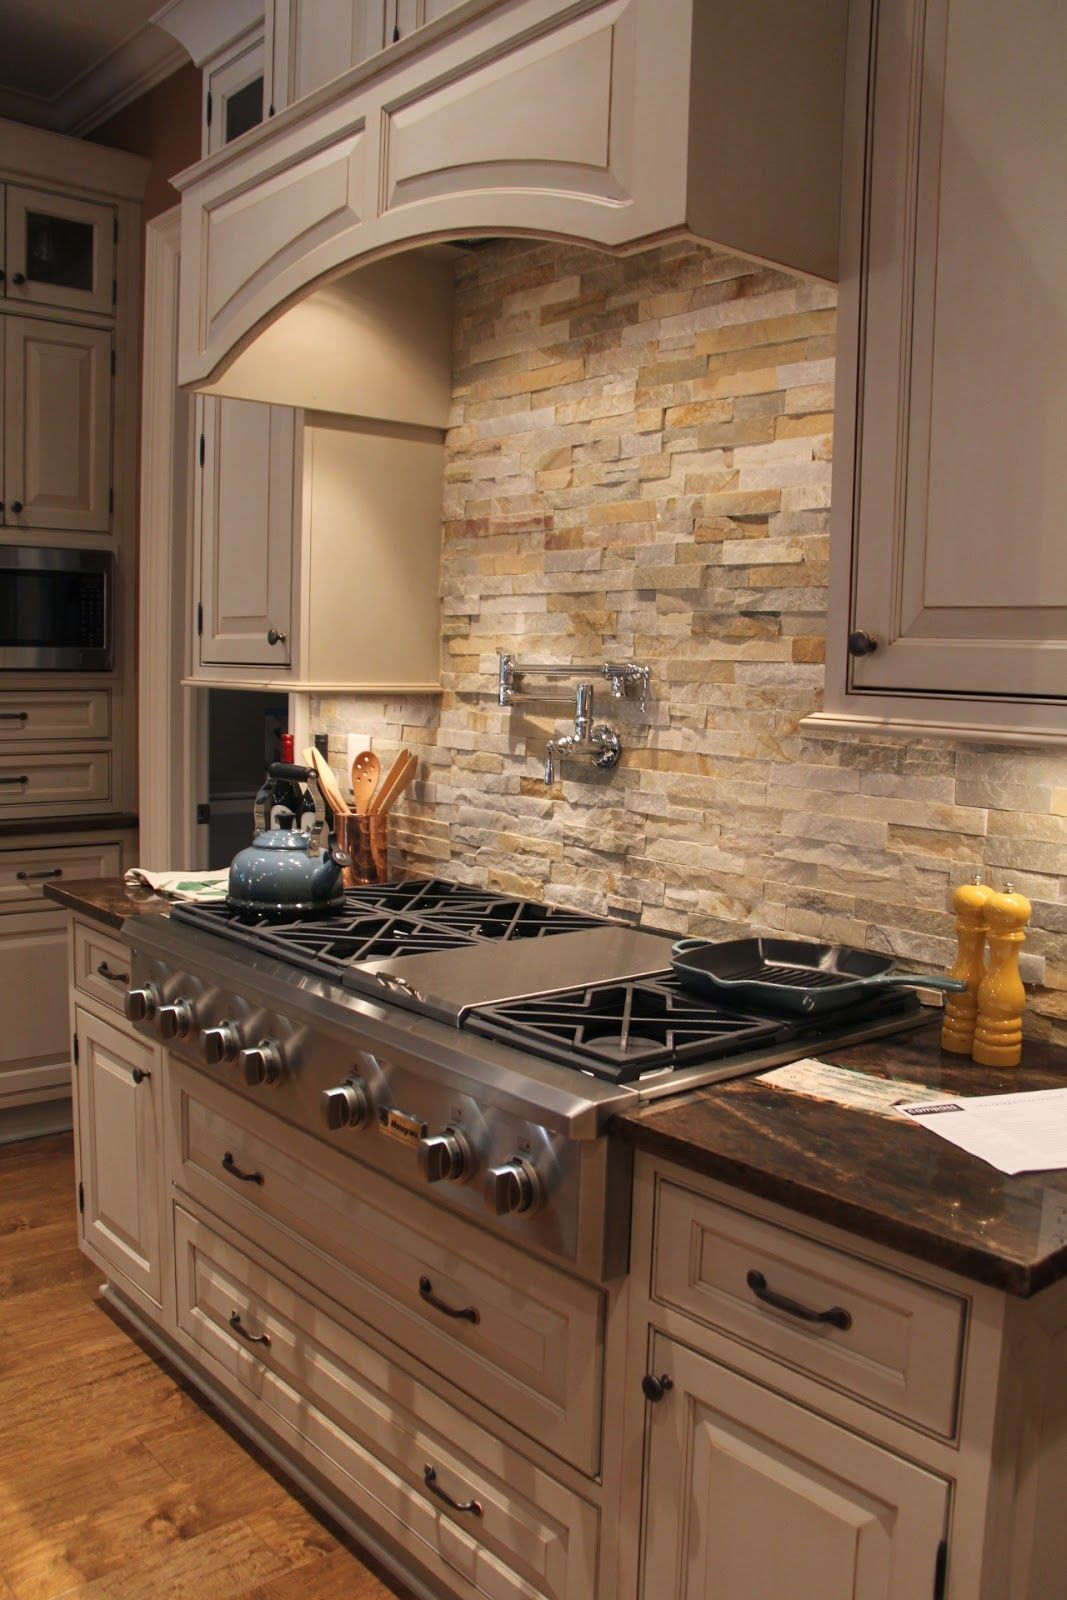 marble backsplash tiles kitchens thrift and shout my 2014 parade of homes review columbus 7363